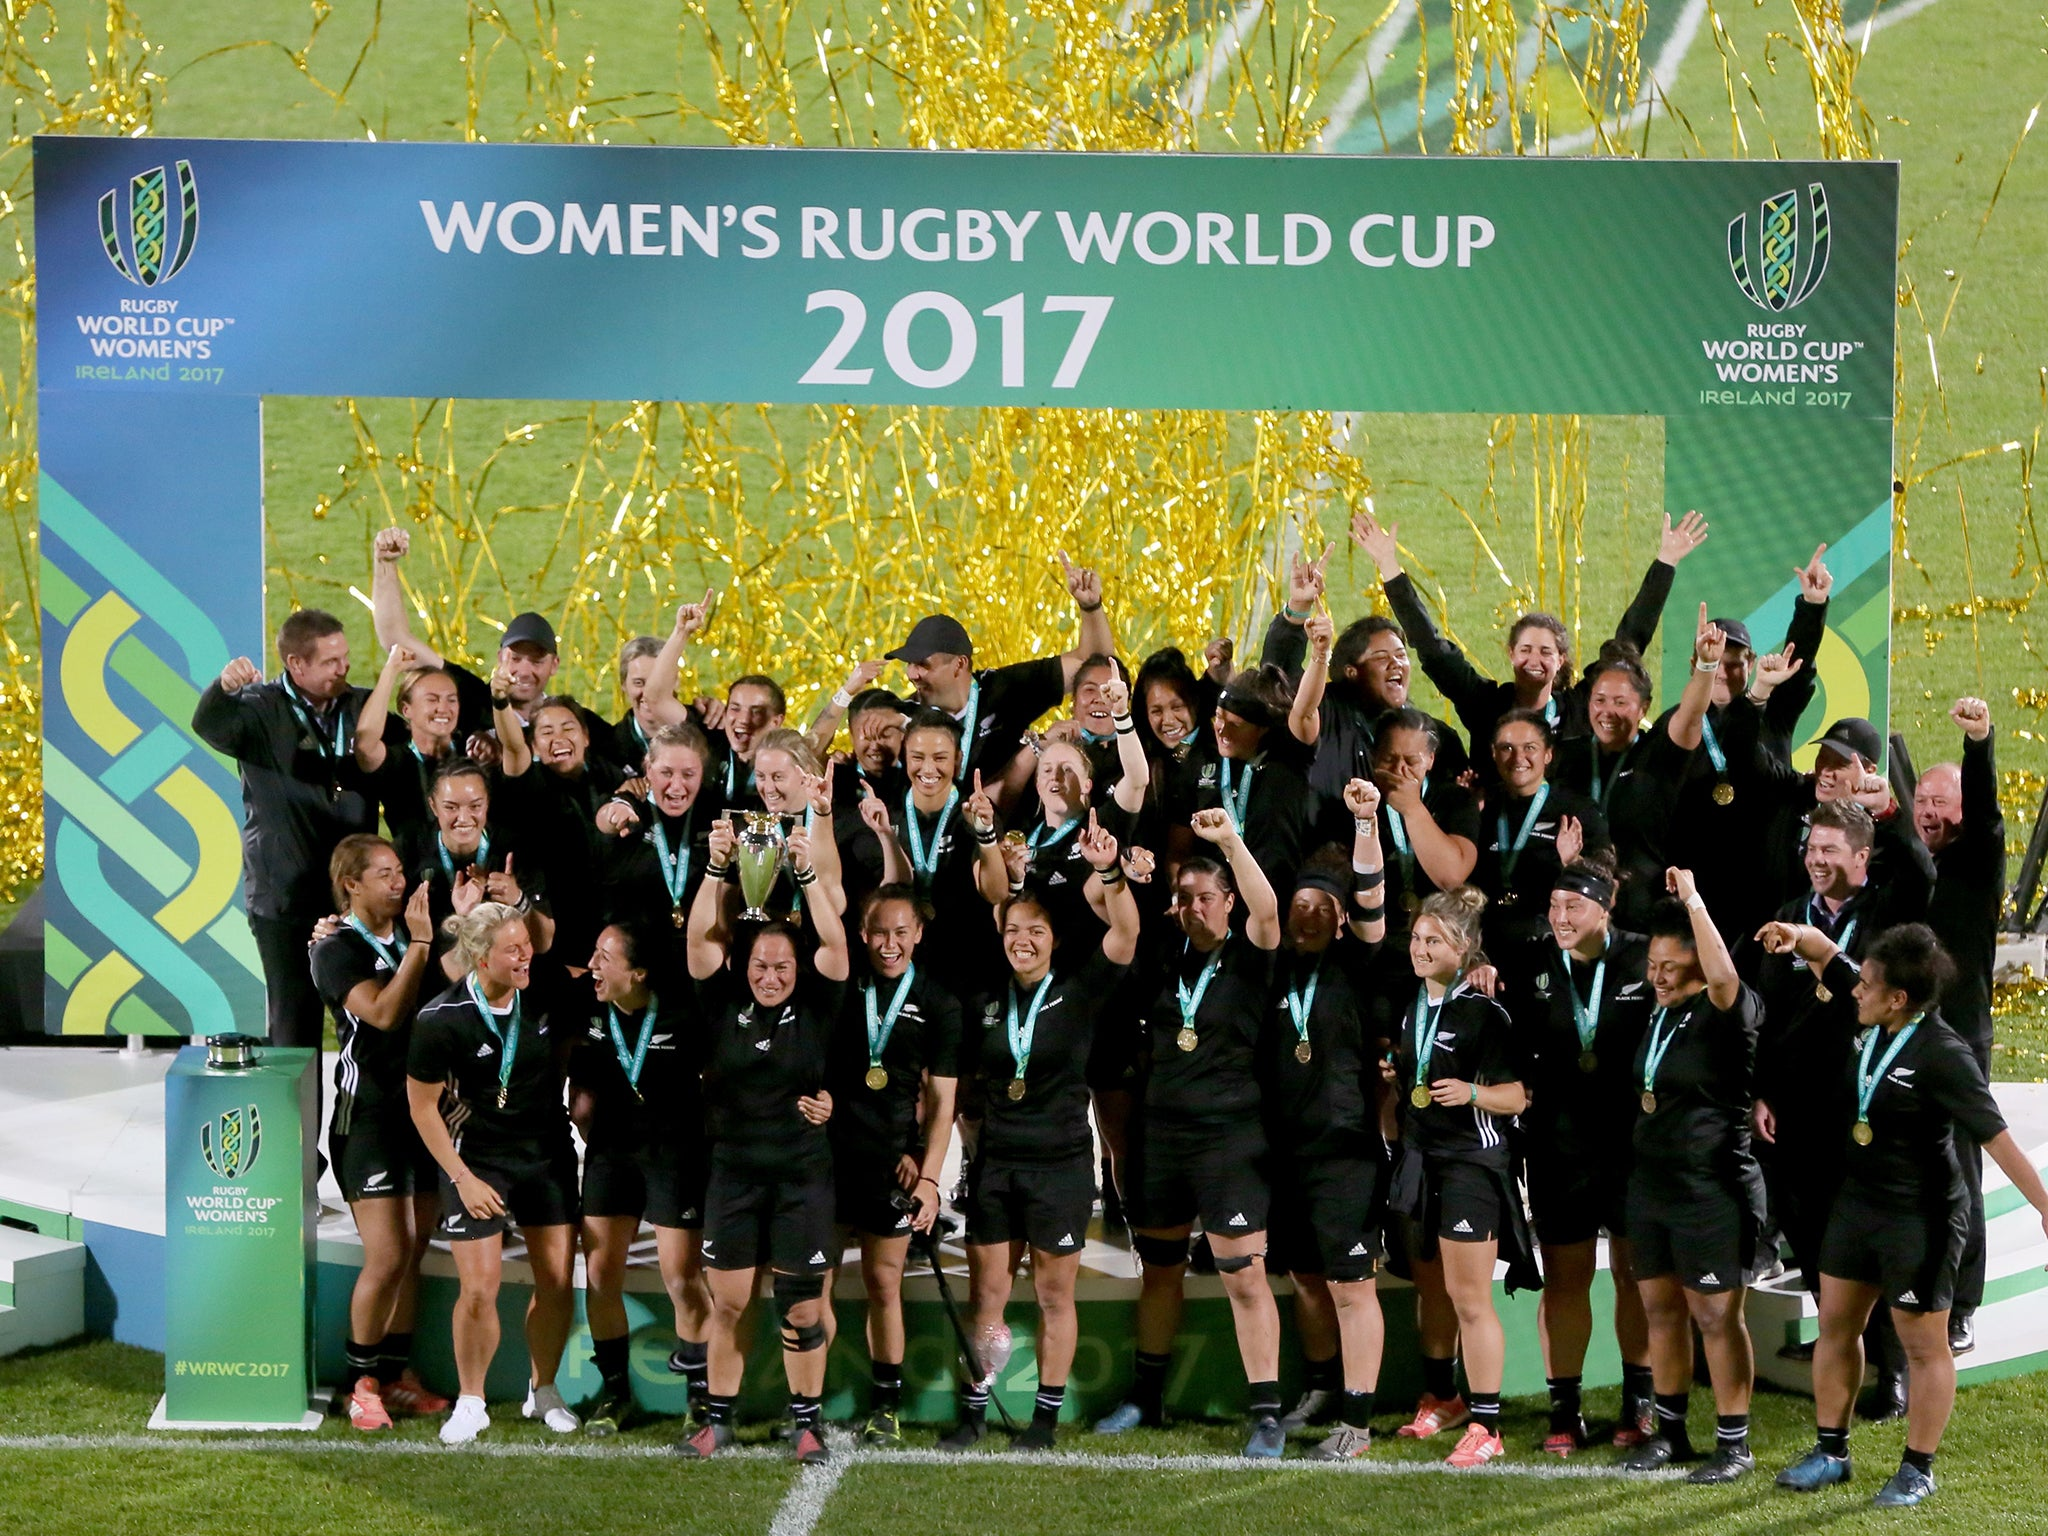 England Collapse Against New Zealand To Suffer Women S Rugby World Cup Heartbreak The Independent The Independent